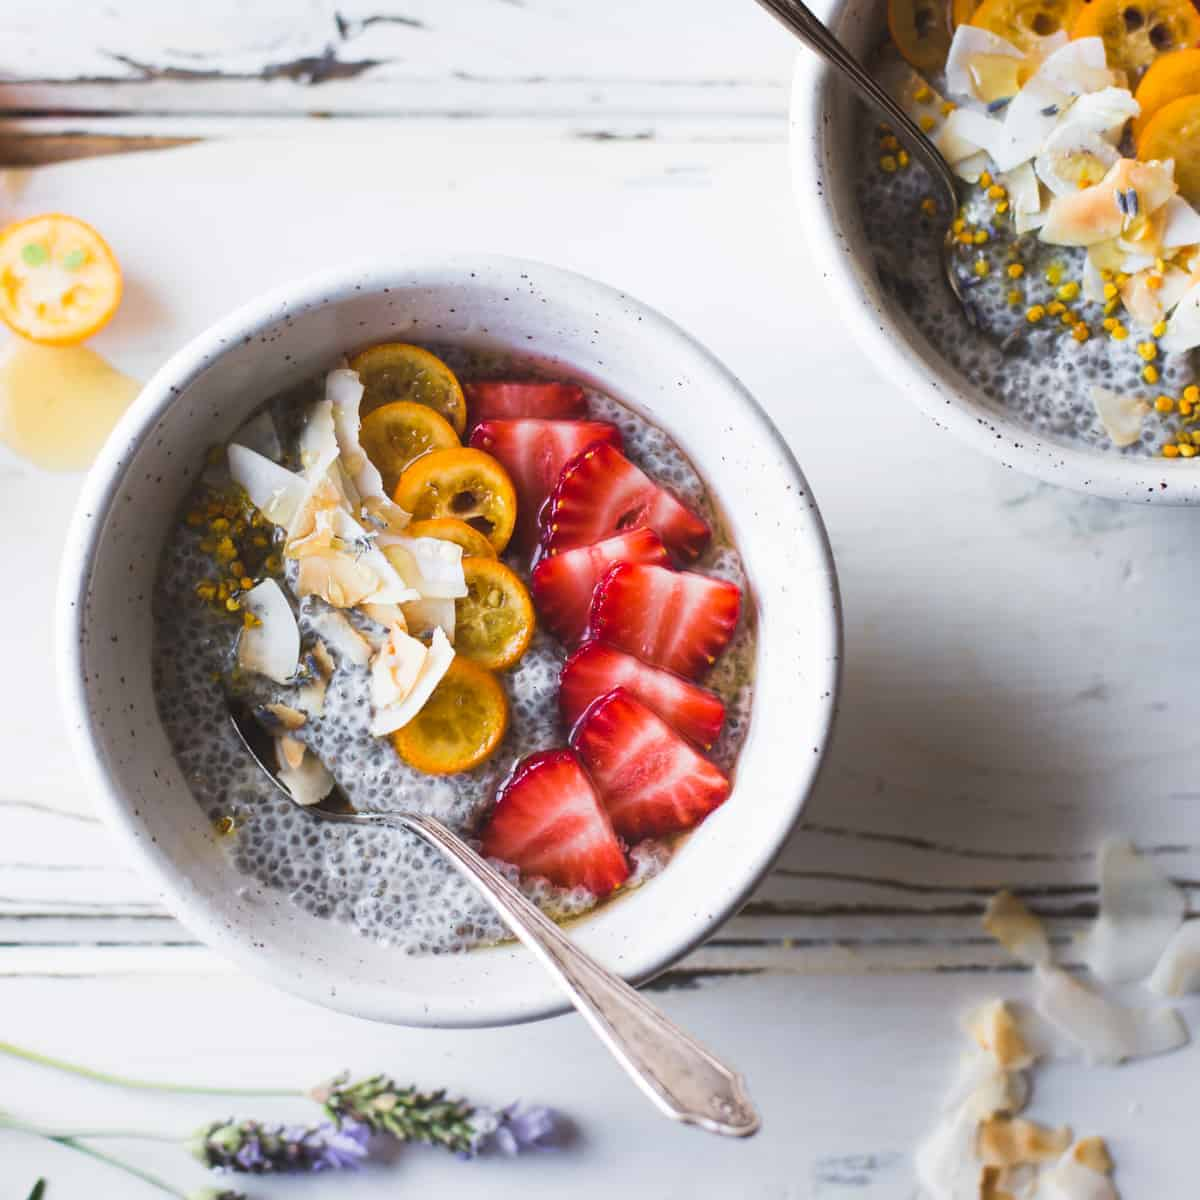 delicious Chia Pudding Breakfast Bowls with Kumquats, Berries & Lavender Honey {gluten-free, dairy-free}